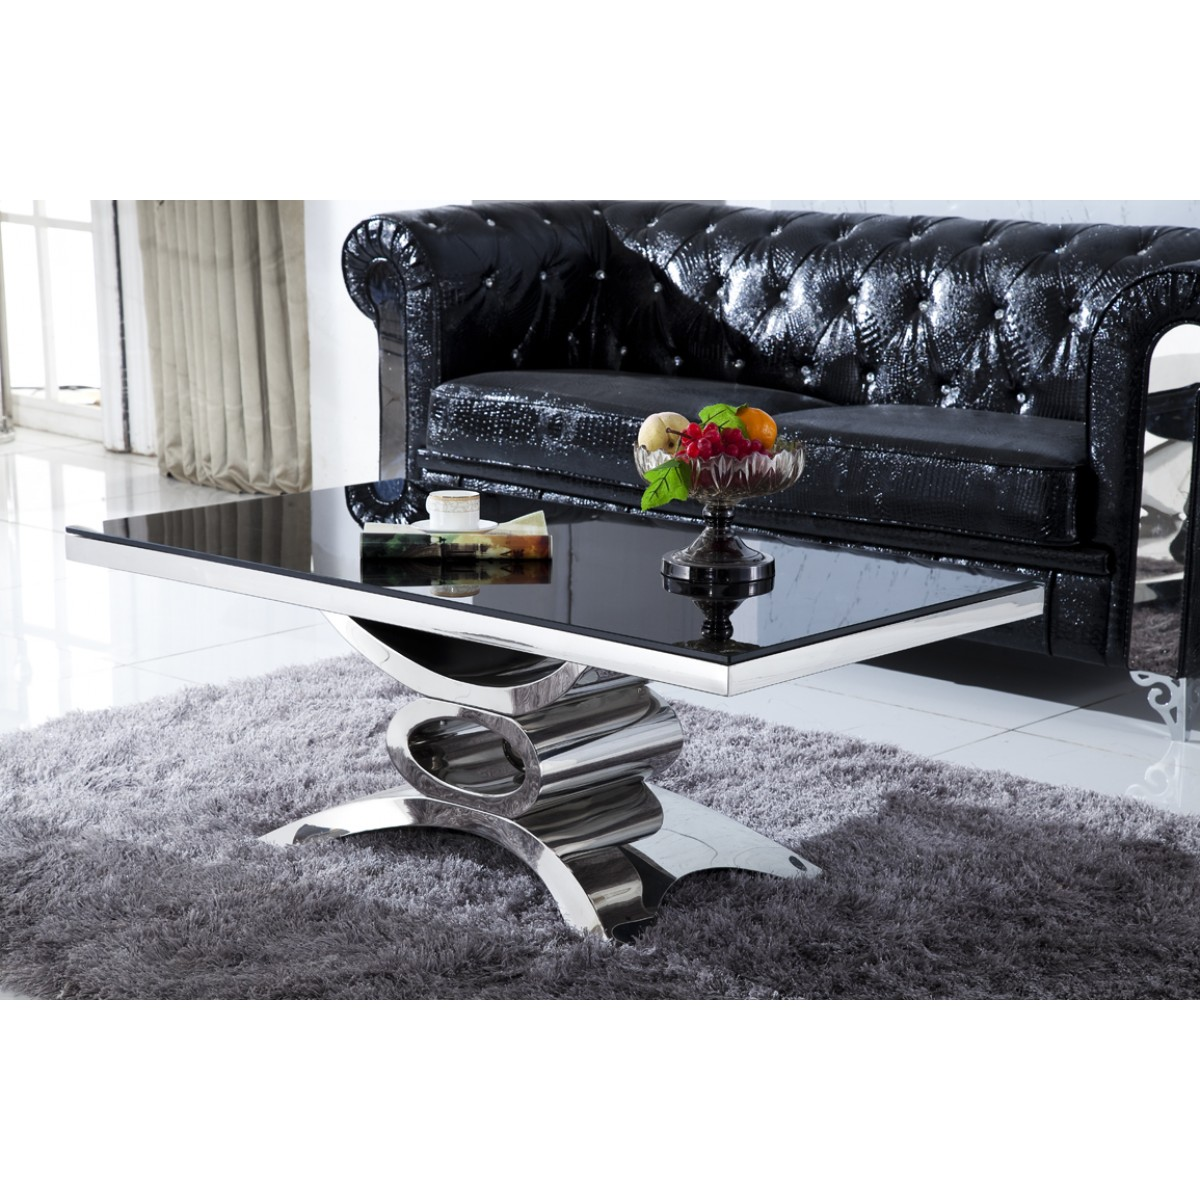 table basse en inox et verre marbre jaipur tables basses tables consoles. Black Bedroom Furniture Sets. Home Design Ideas